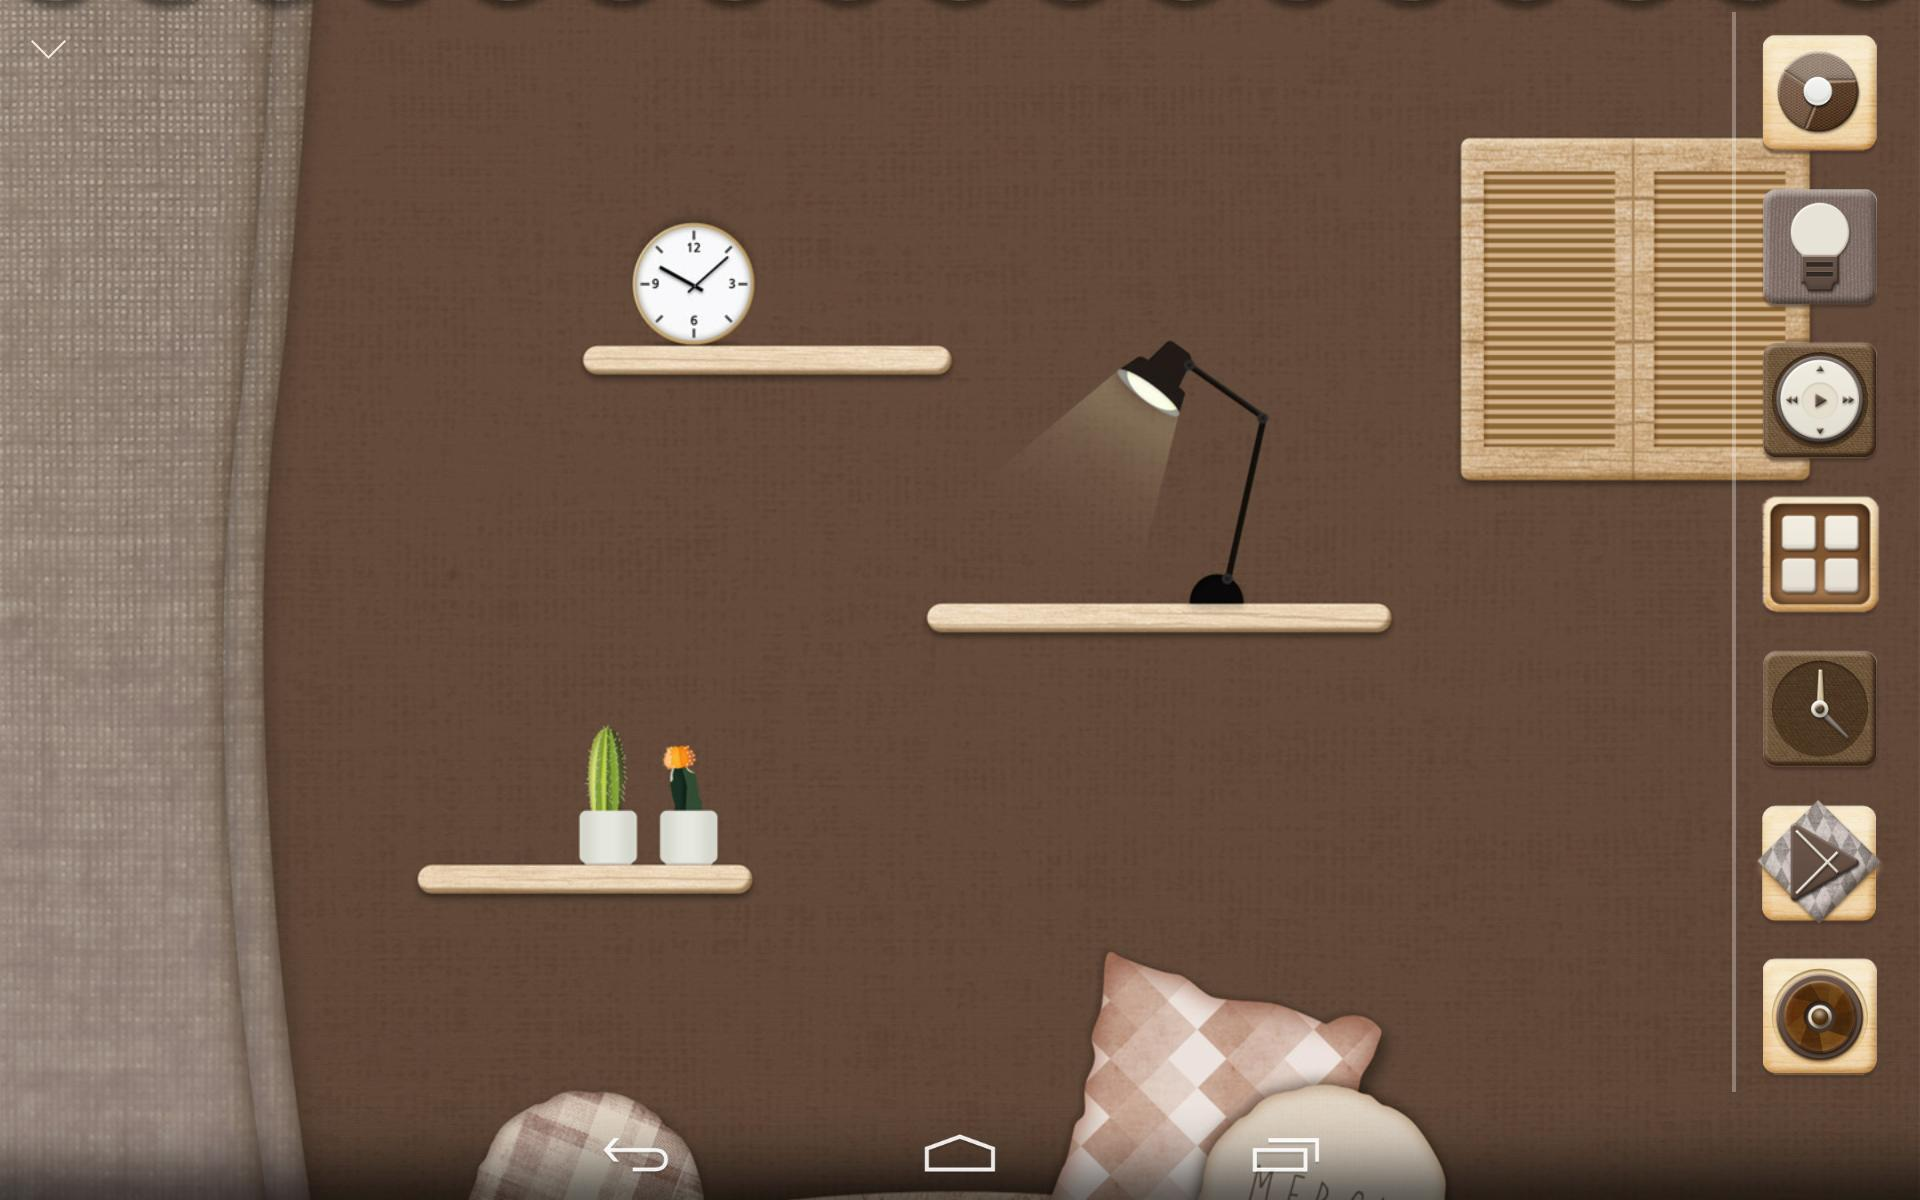 My room Atom Theme for Android - APK Download